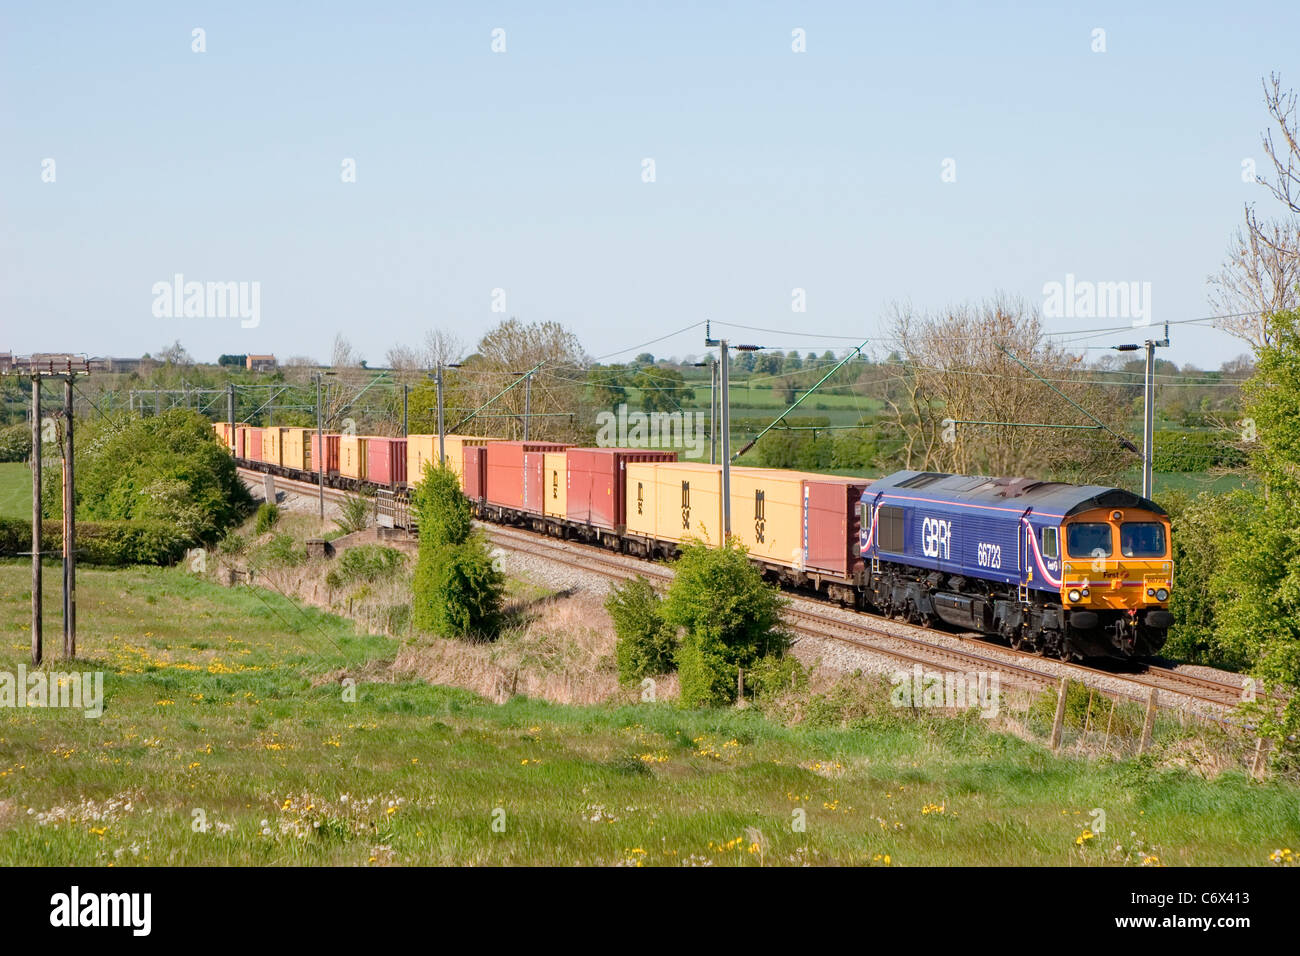 A GBRf owned class 66 diesel locomotive working an intermodal container freight train near Long Buckby. - Stock Image